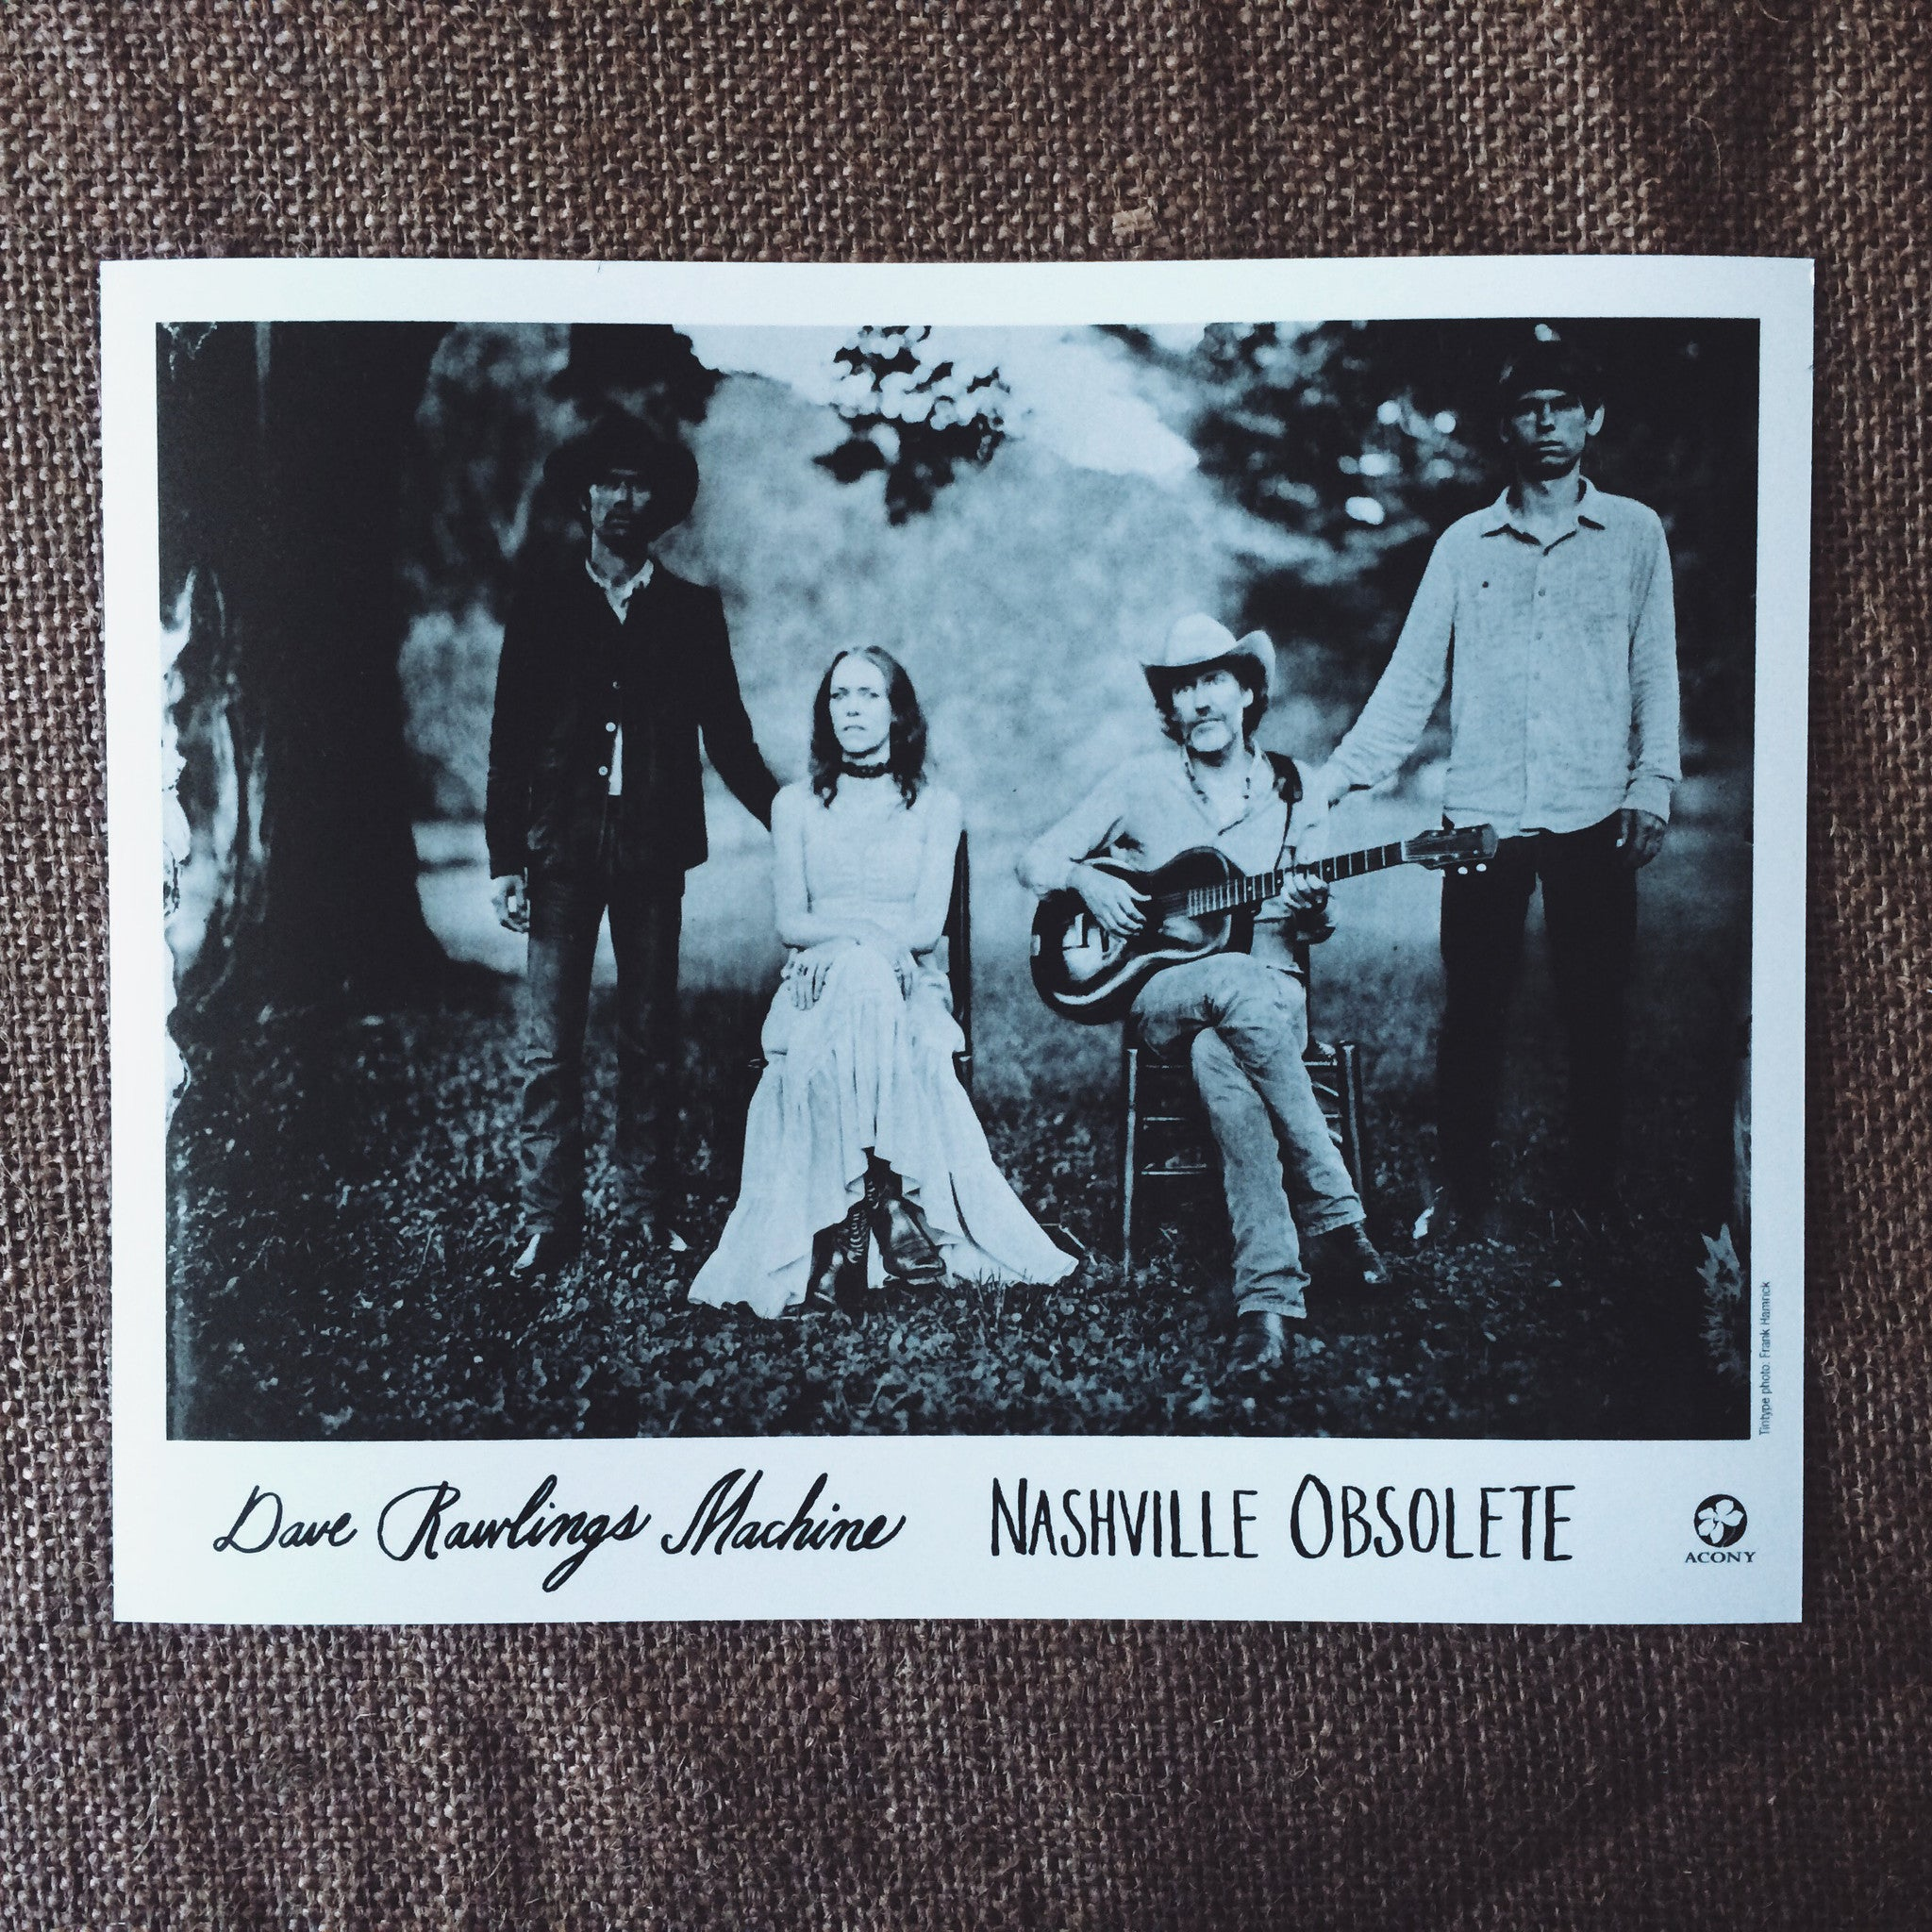 Nashville Obsolete 8 X 10